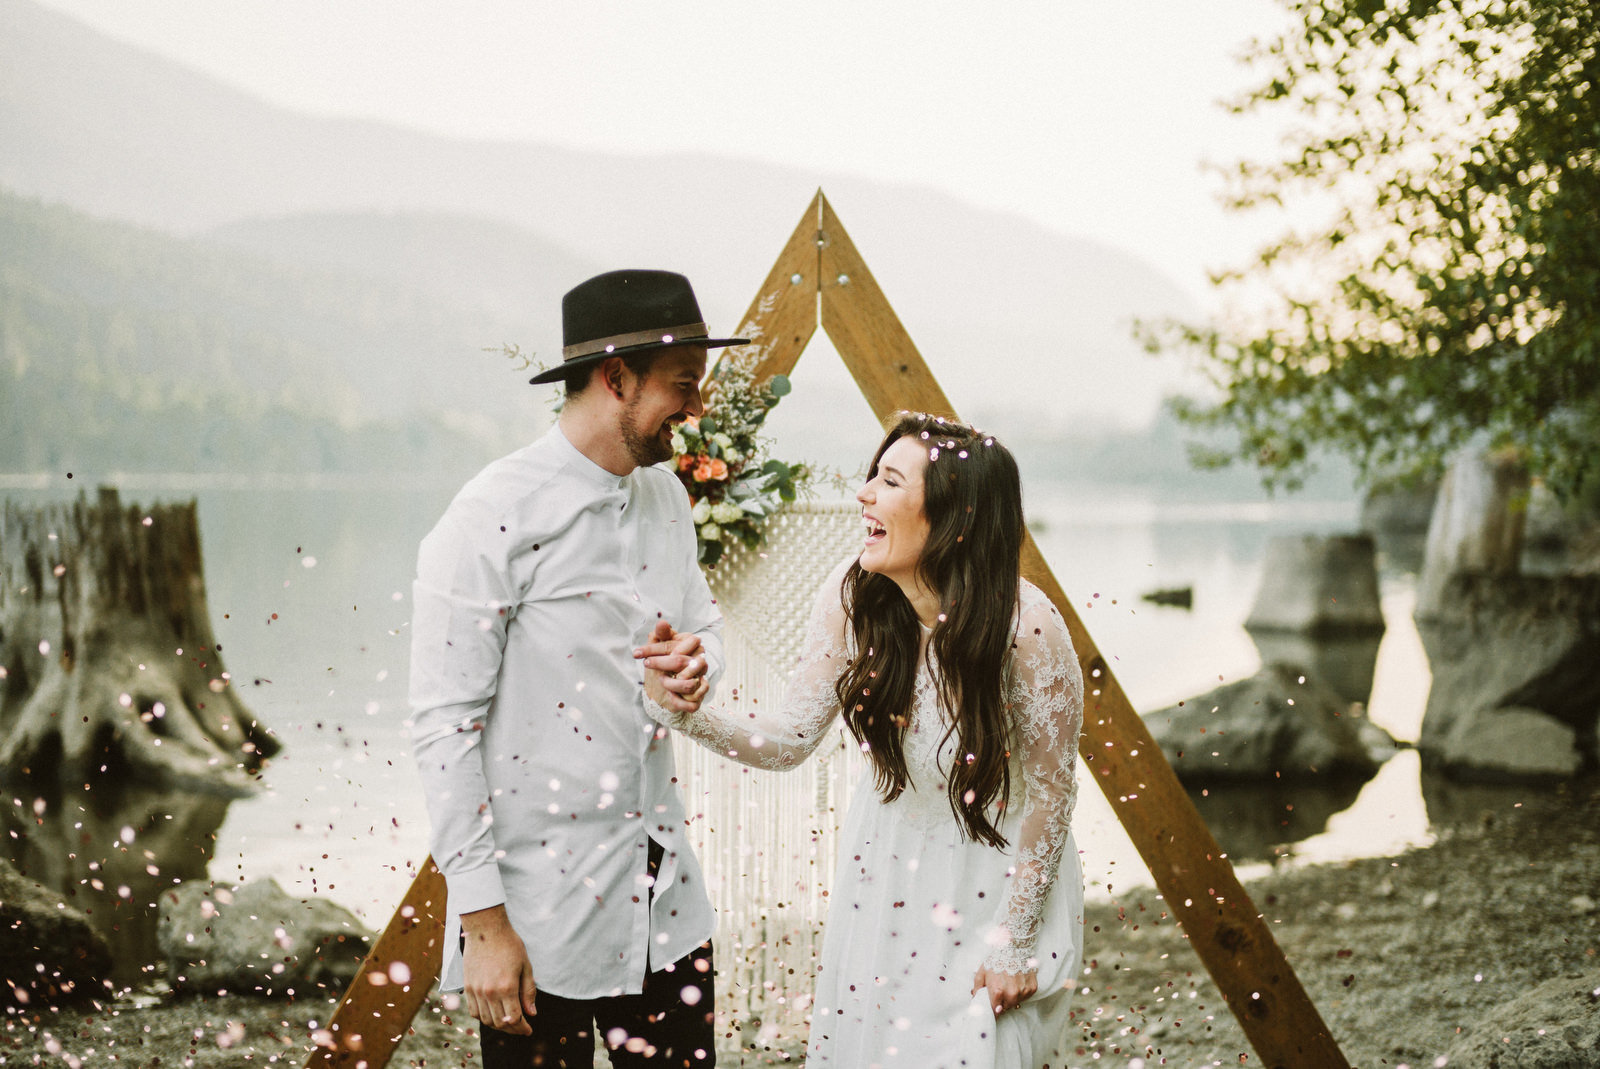 athena-and-camron-seattle-elopement-wedding-benj-haisch-rattlesnake-lake-christian-couple-goals64